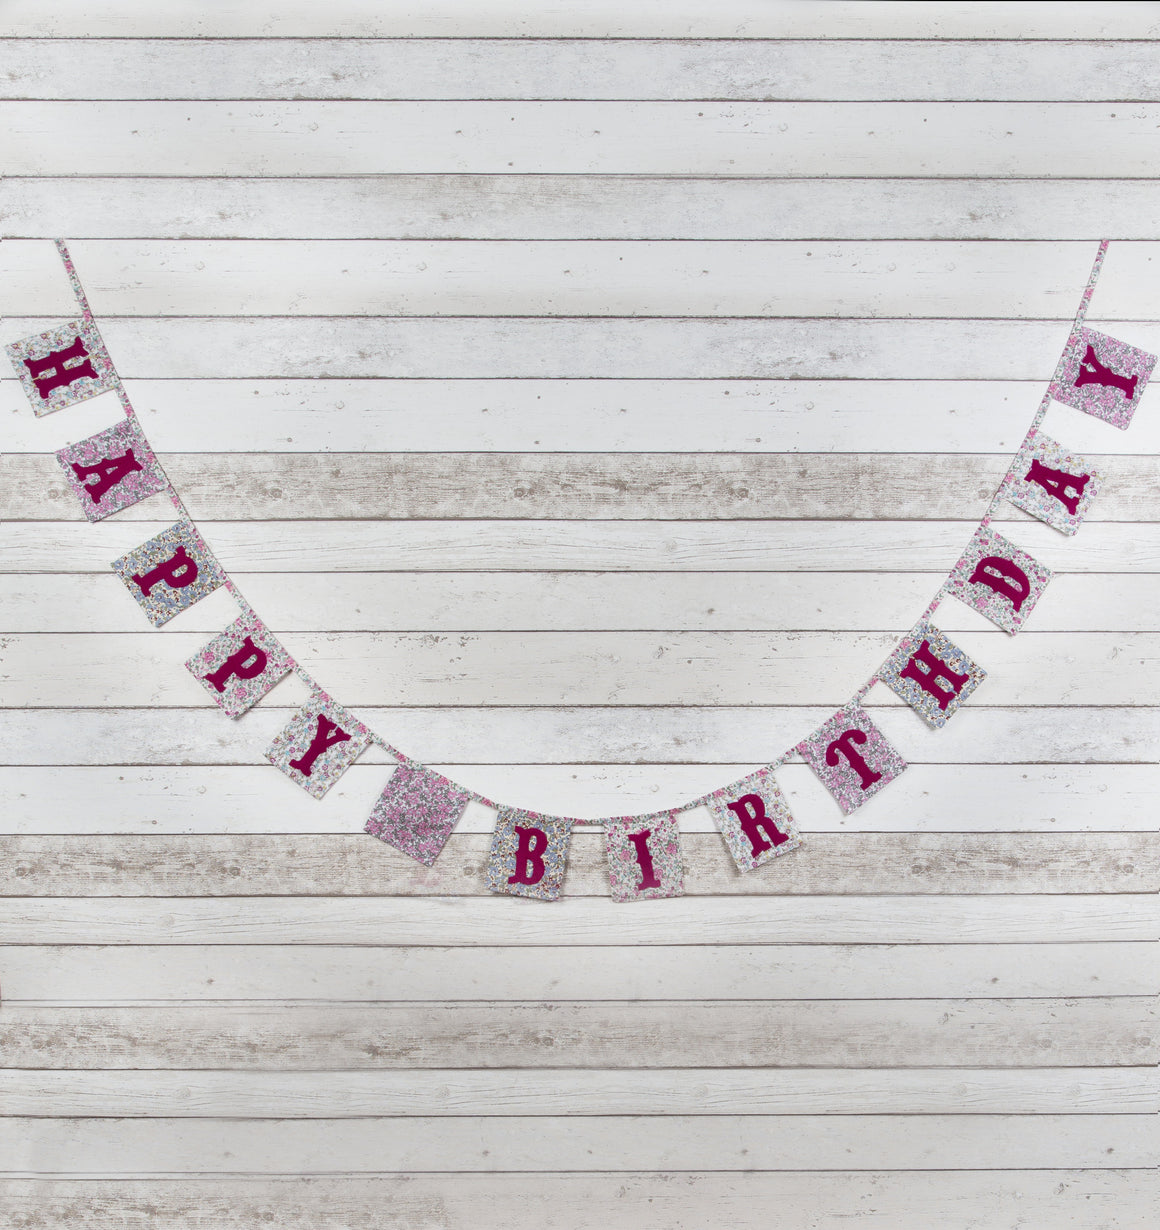 Vintage Floral Happy Birthday Fabric Bunting - The Love Trees